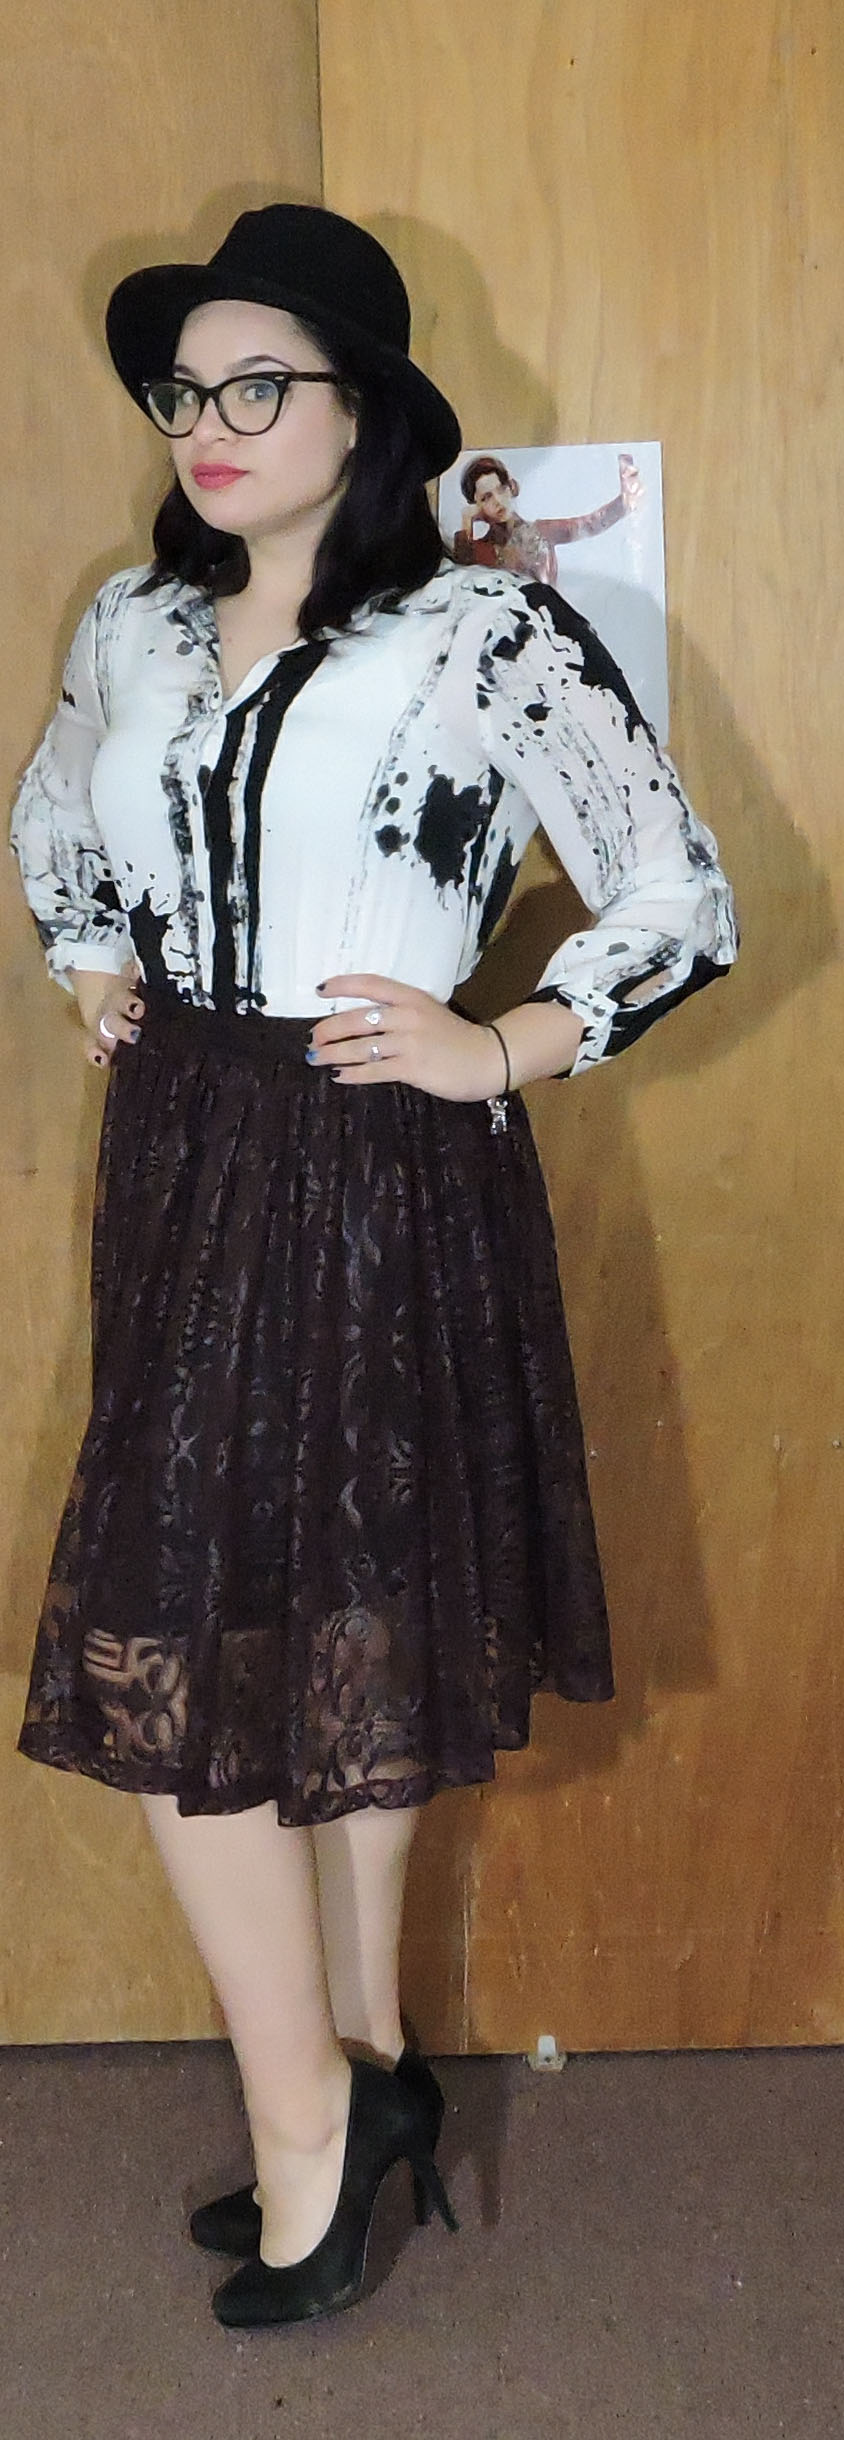 paint shirt with laser cut skirt.jpg